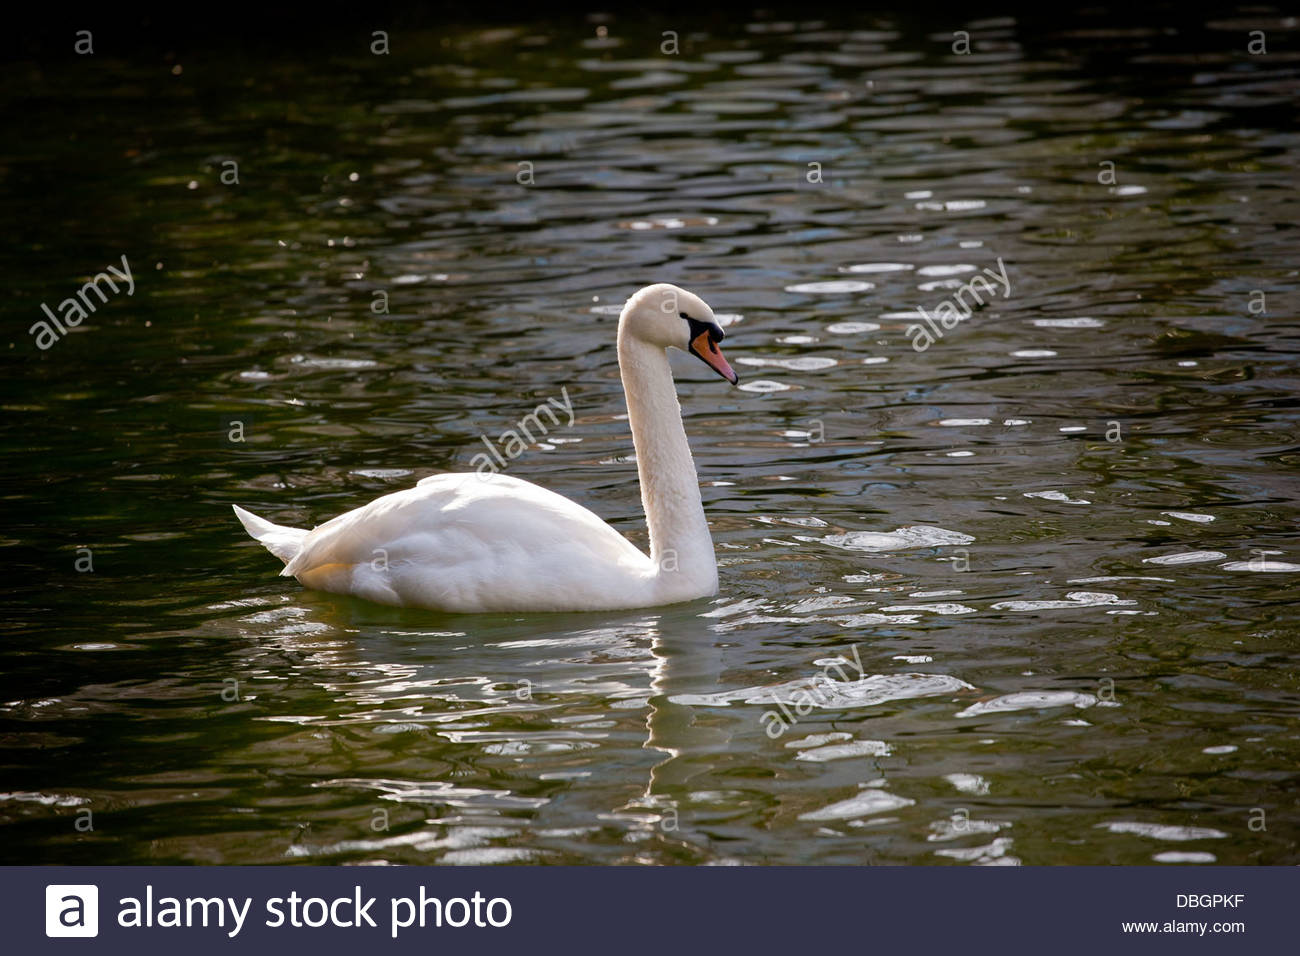 Lonely swan swimming. - Stock Image